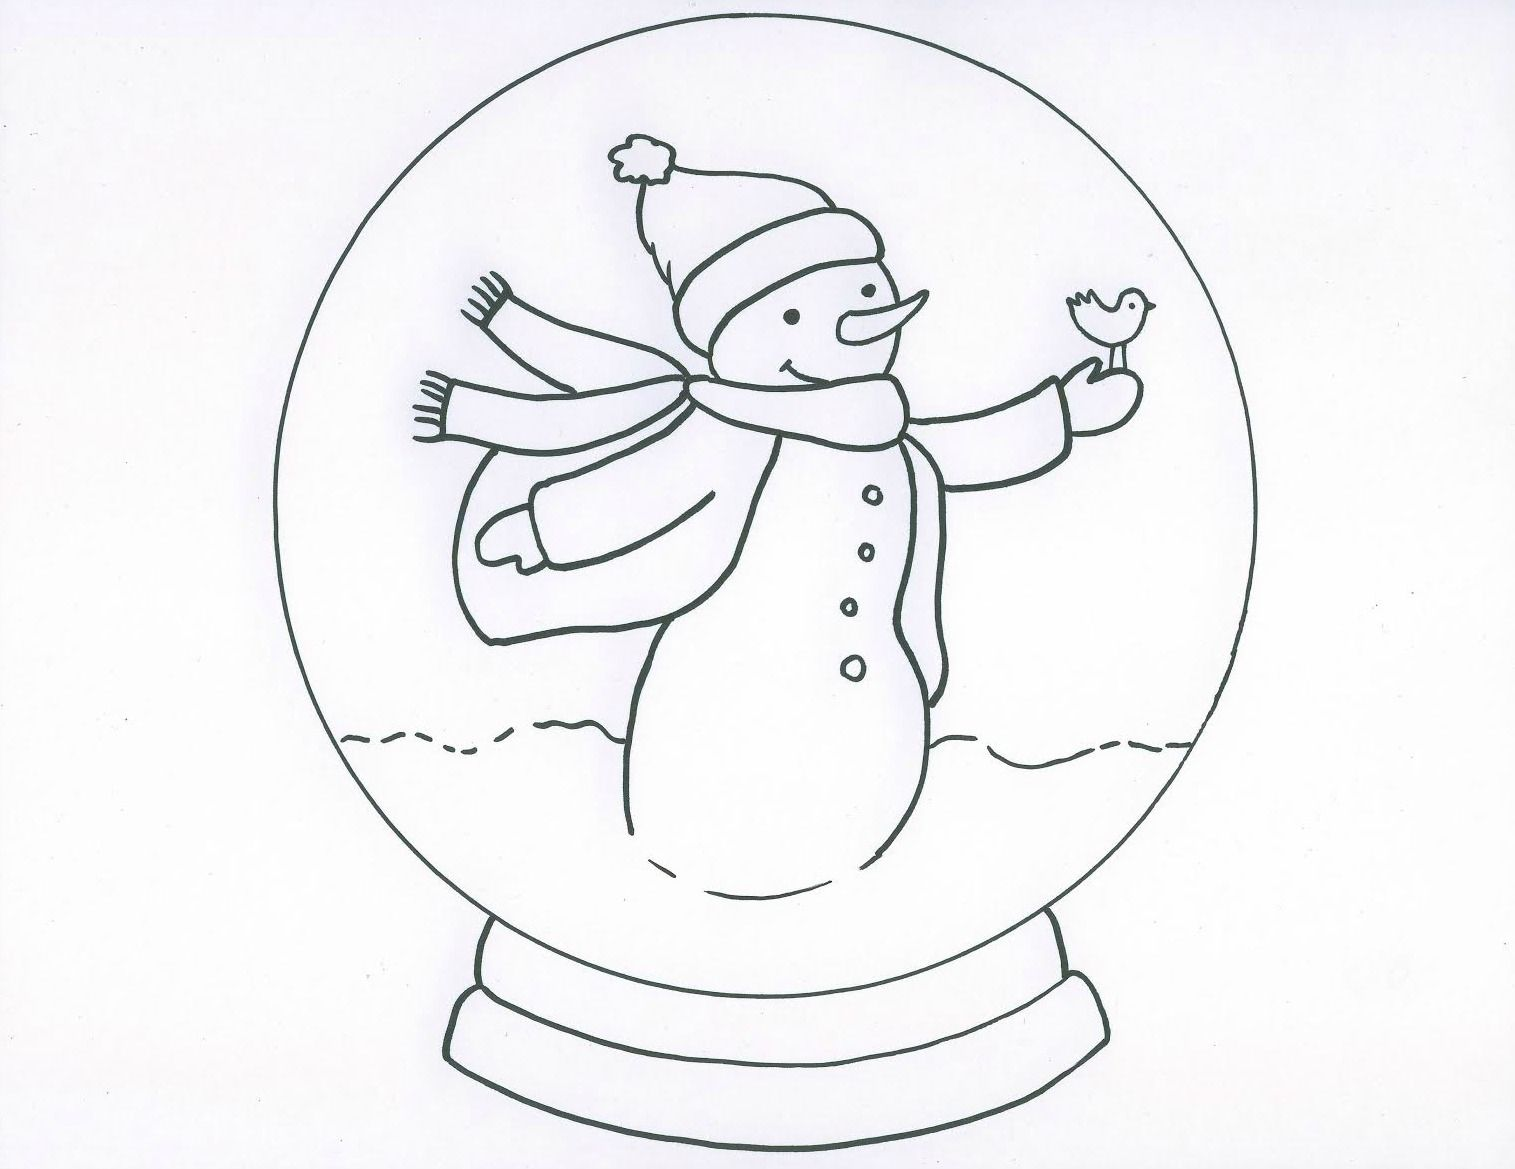 Winter Sketch For Kids Black And White Snow Globe